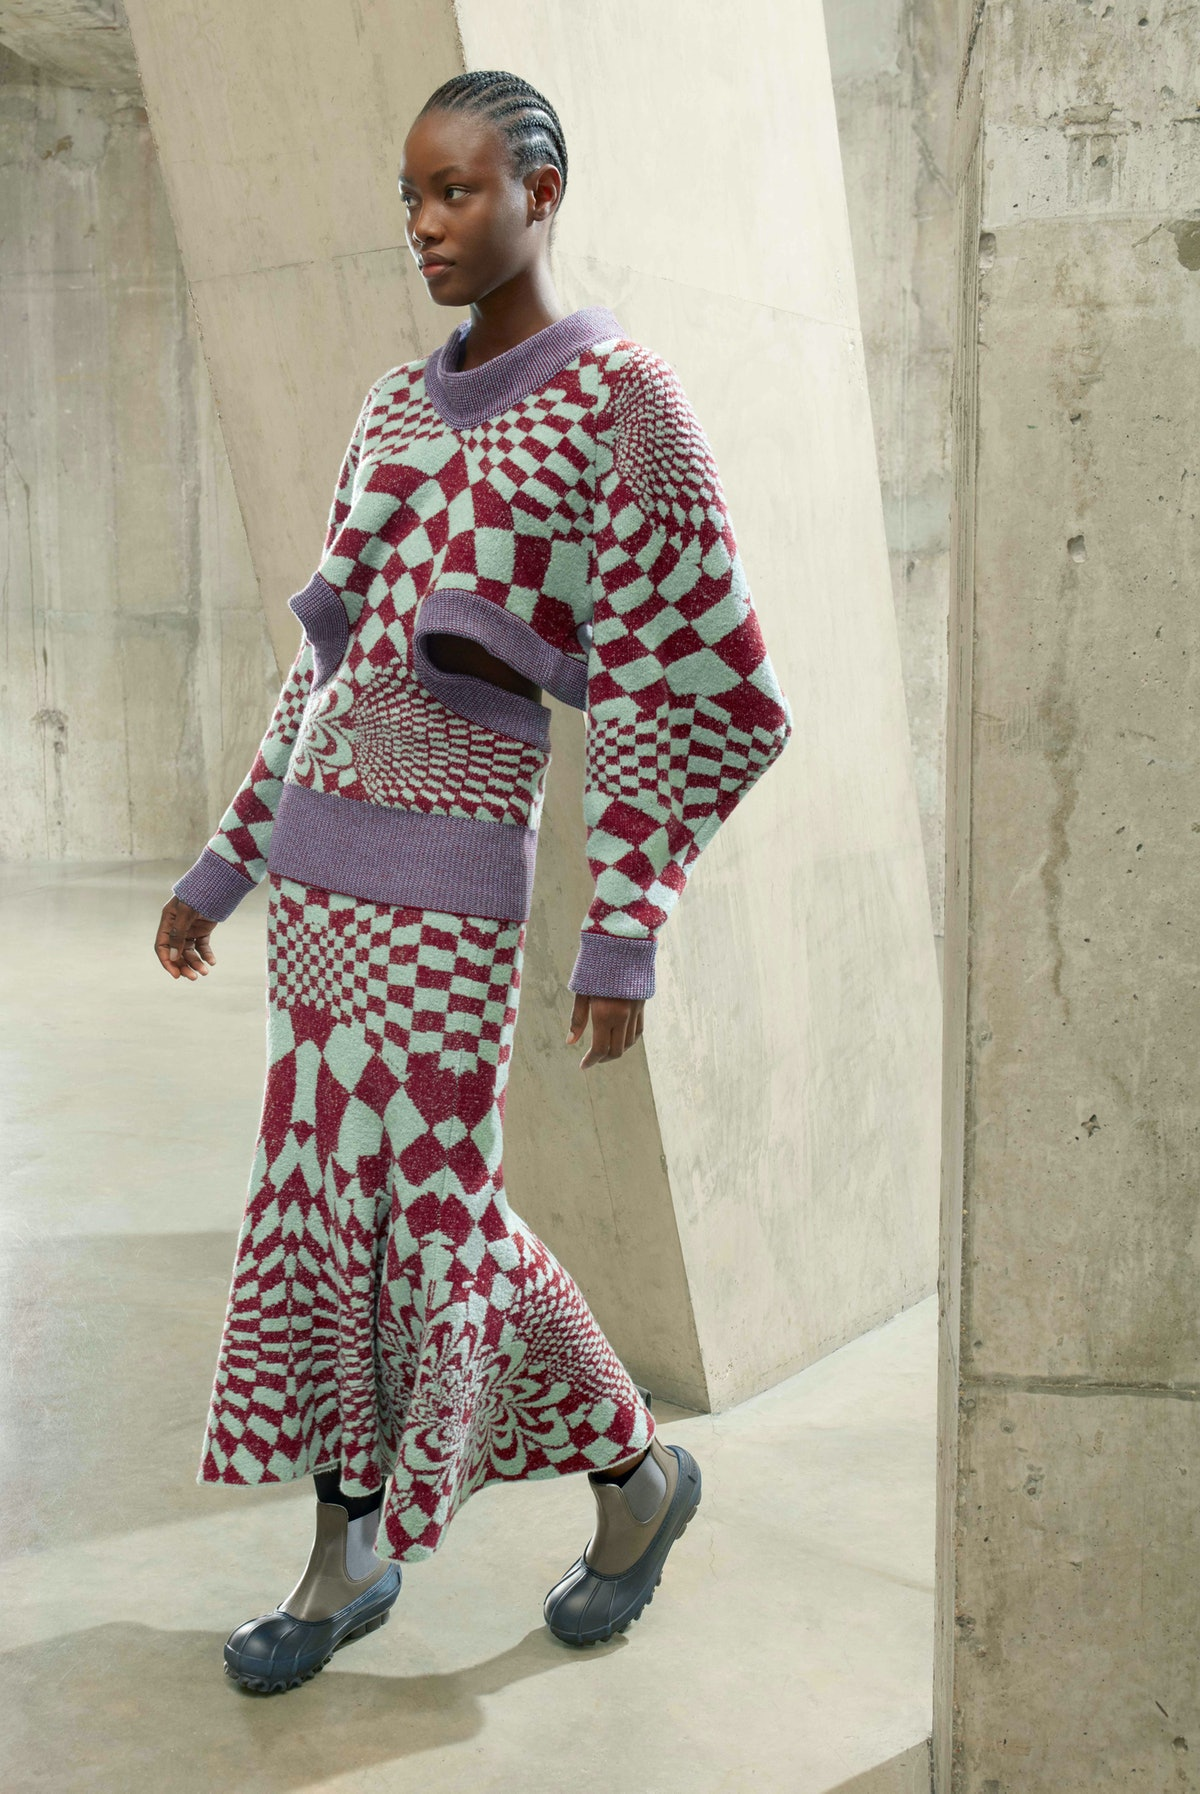 Model in checkerboard knits